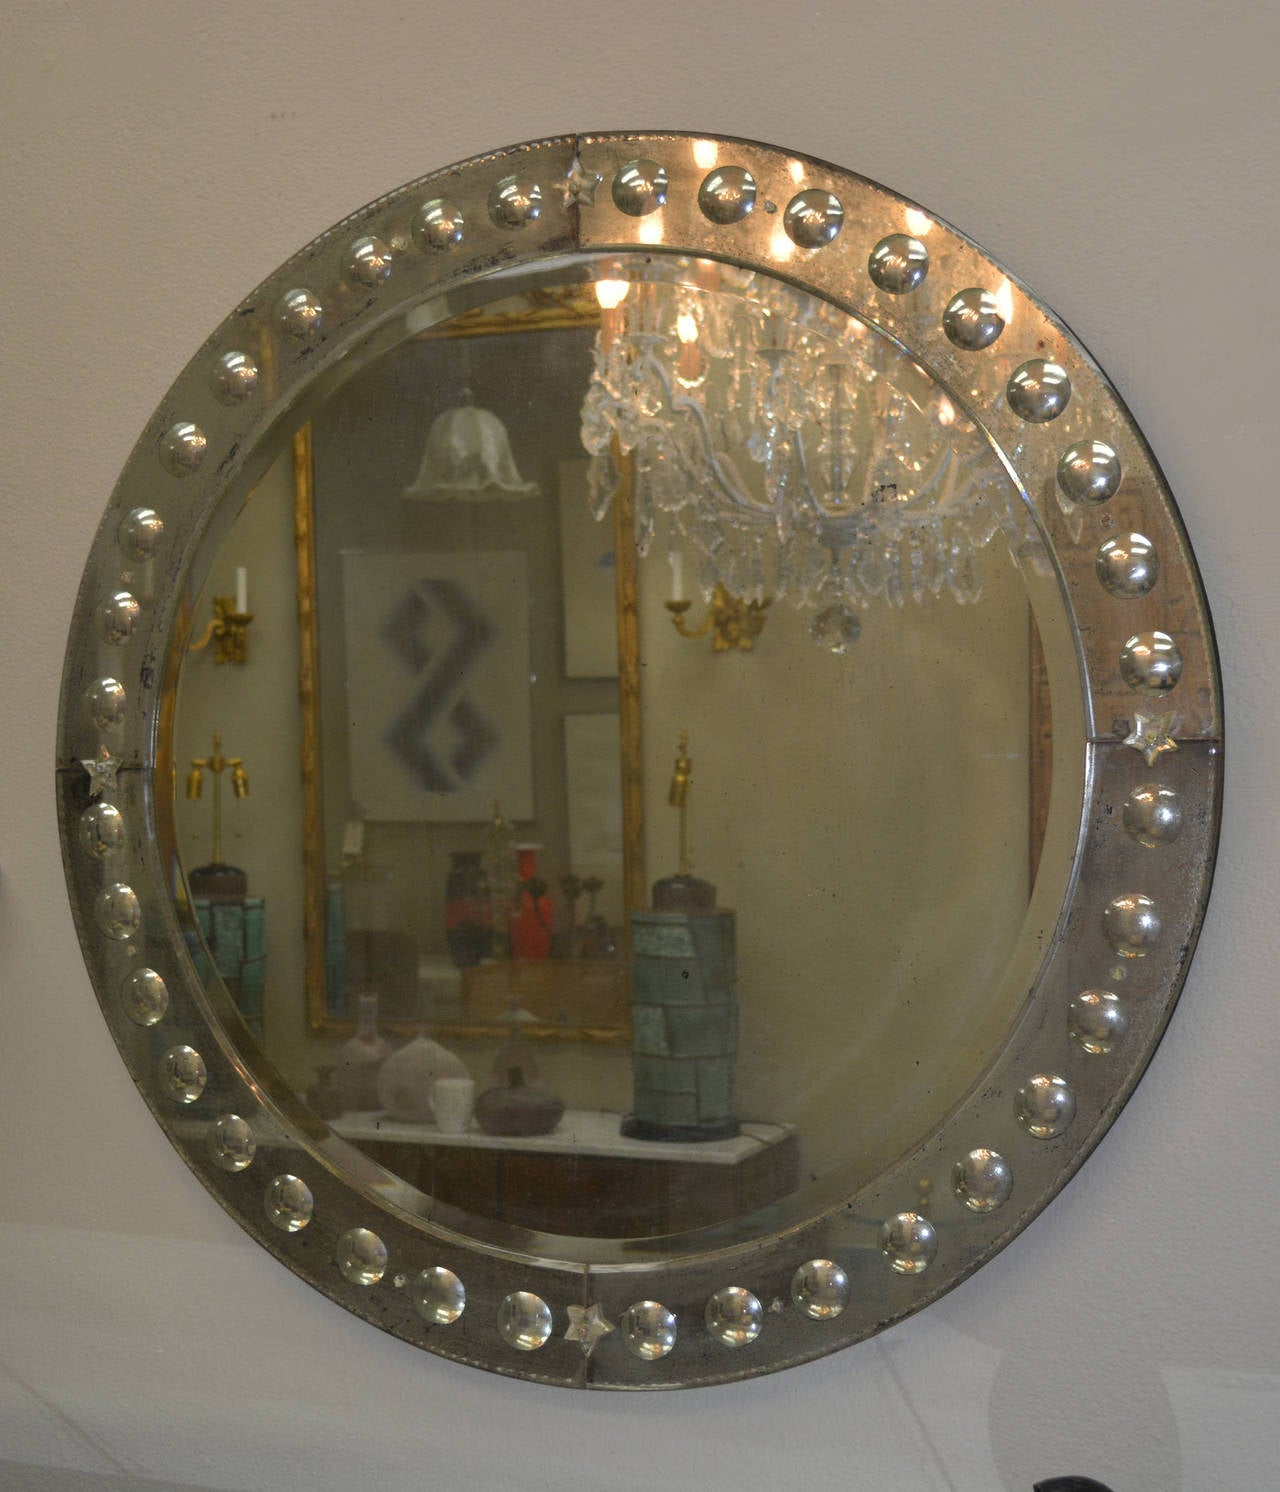 Large Round Vintage Mirror With Carved Mirror Panel Frame